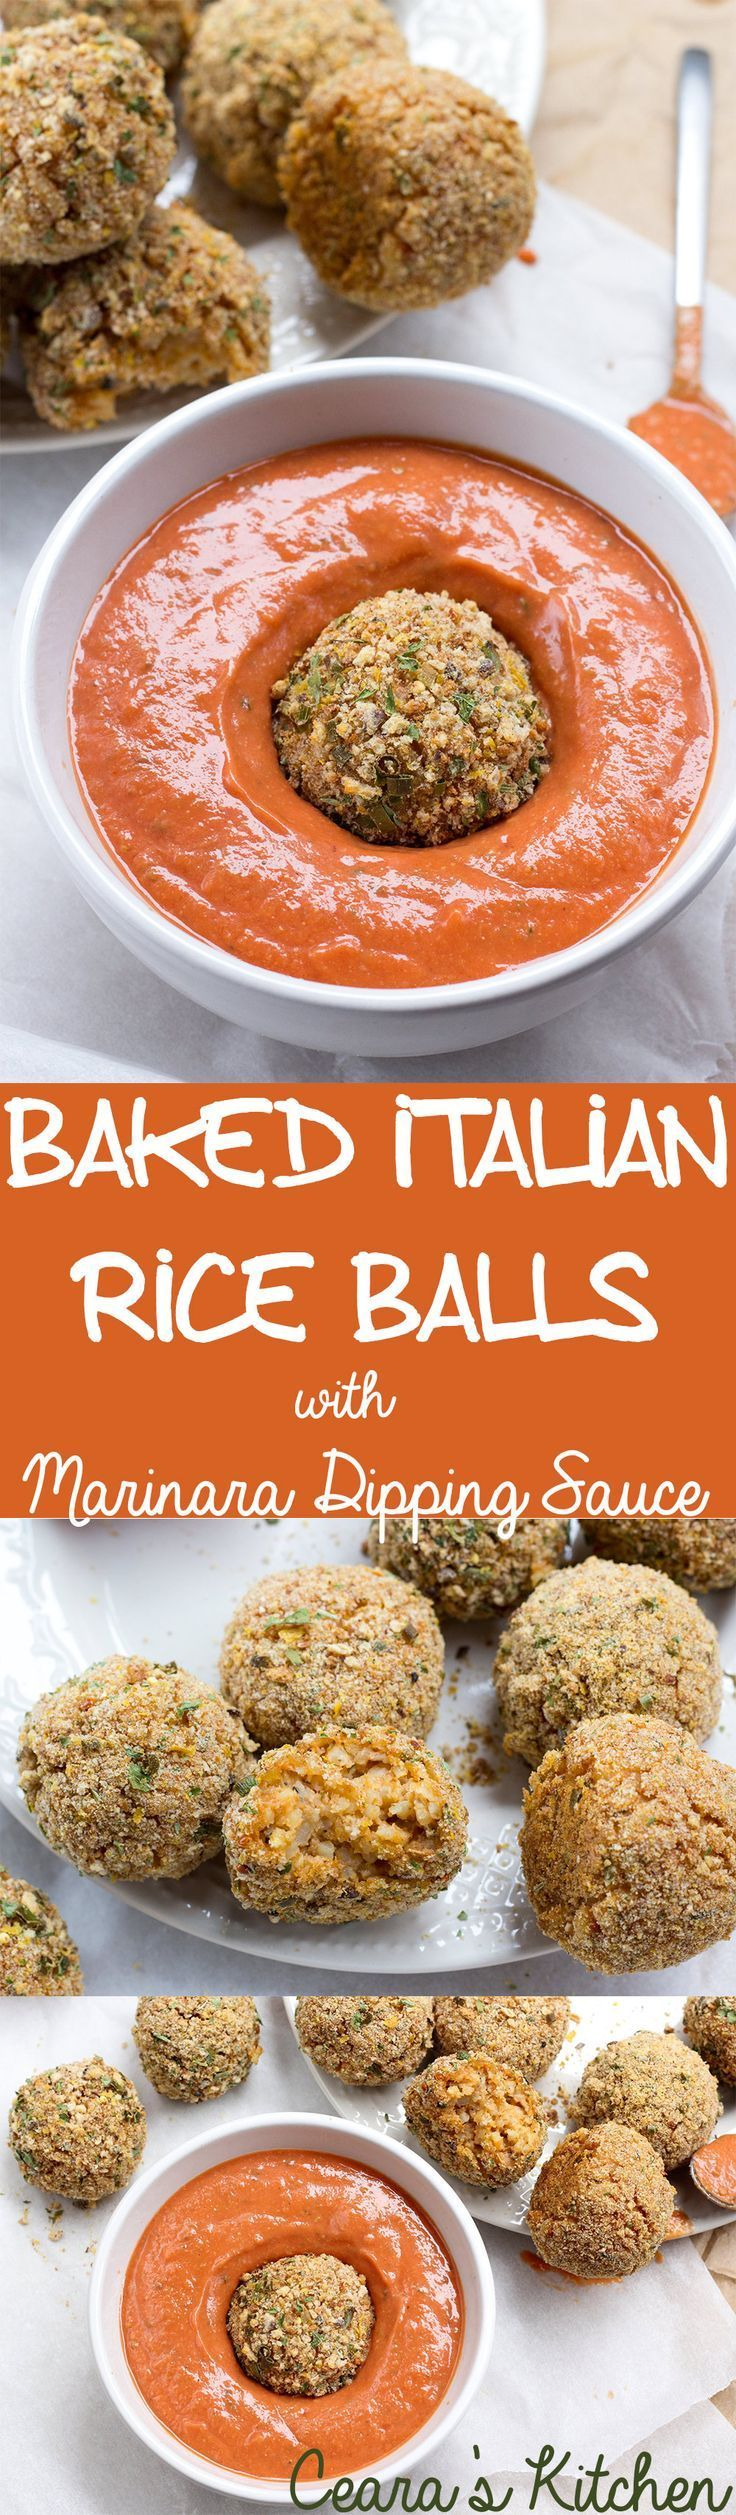 Baked Italian Rice Balls (Arancini) with Creamy Marinara Dipping Sauce - the perfect appetizer or side! Soft, cheesy & risotto-filled centered PLUS a crisp, herby + breaded exterior!